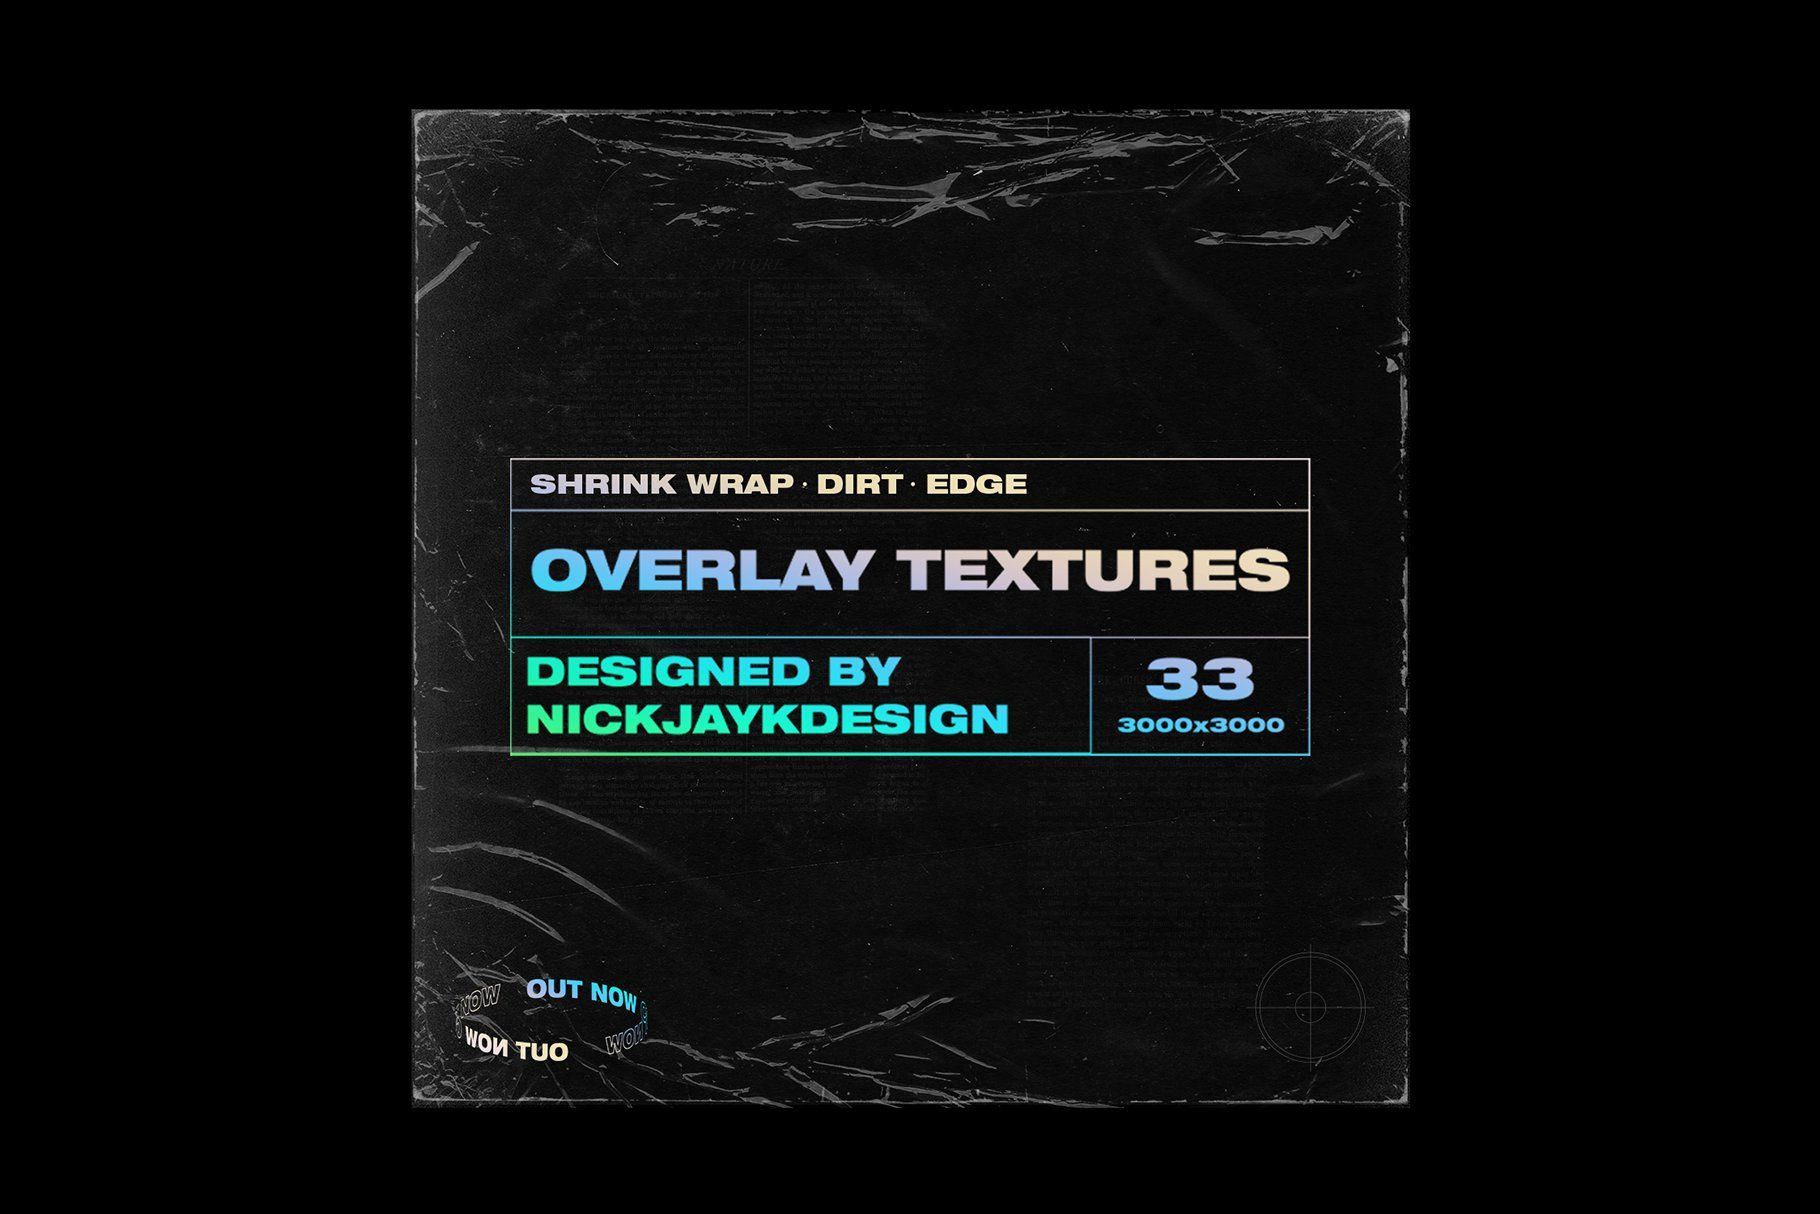 High Res Overlay Texture Pack In 2020 Texture Packs Plastic Texture Overlays